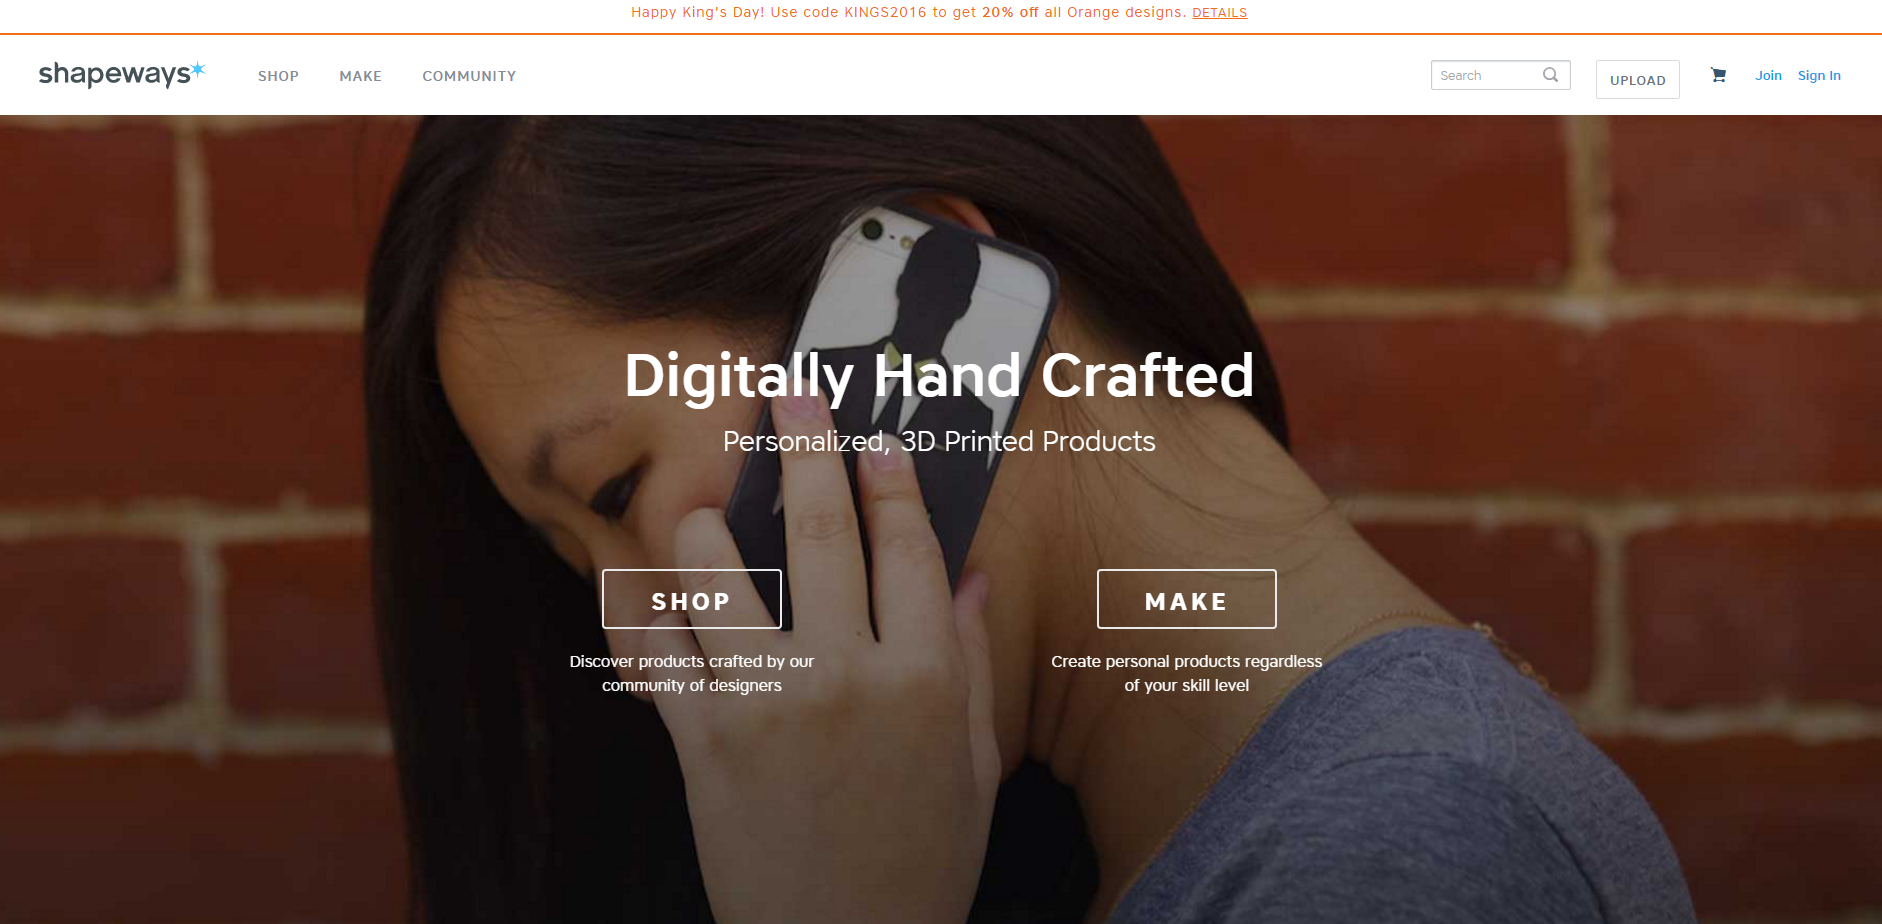 Shapeways offers 3D printing services for all thos who don't own a 3D printer and ships printed objects worldwide